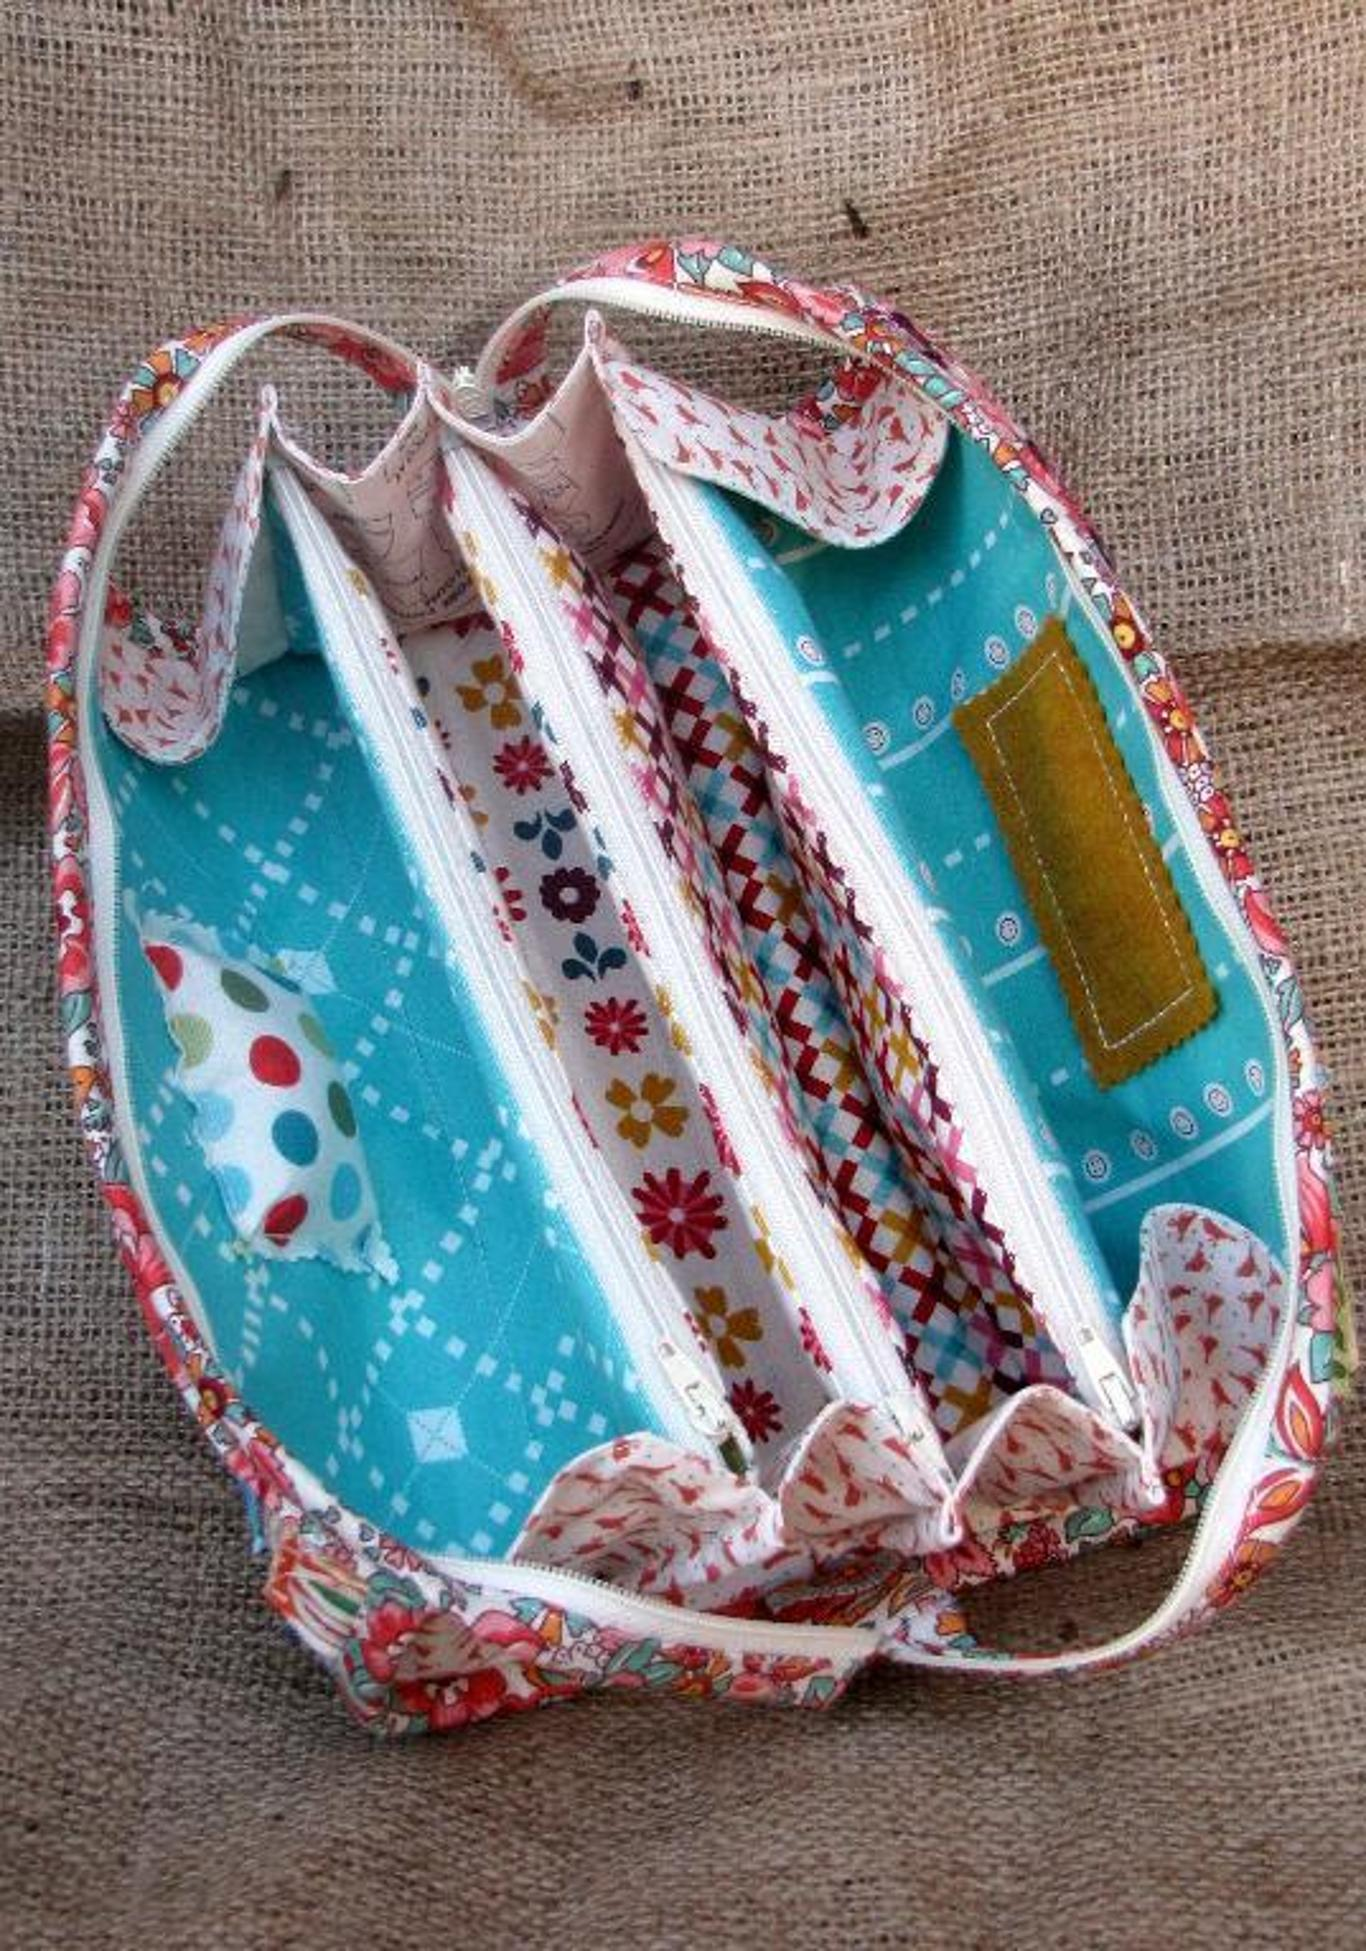 Sew Together Bag Pattern from SewDemented